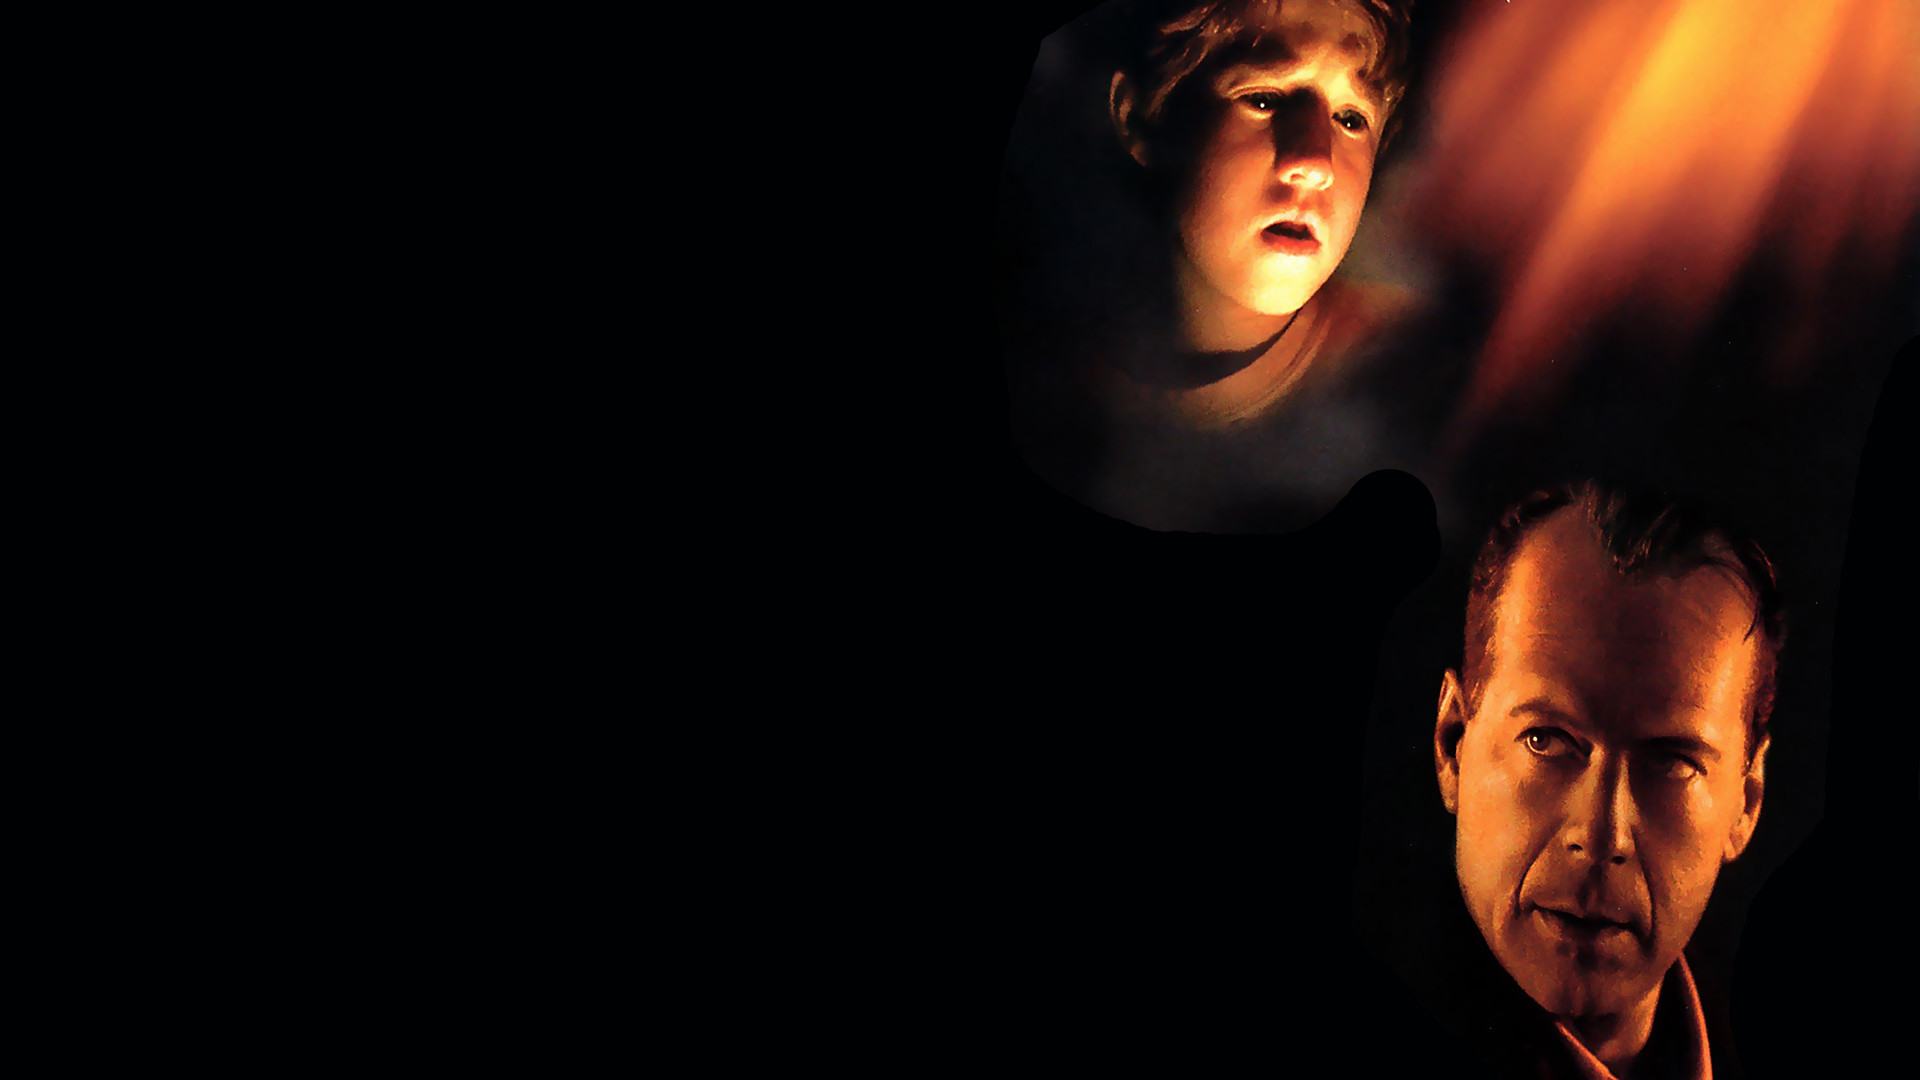 The Sixth Sense Wallpapers Movie Hq The Sixth Sense Pictures 4k Wallpapers 2019